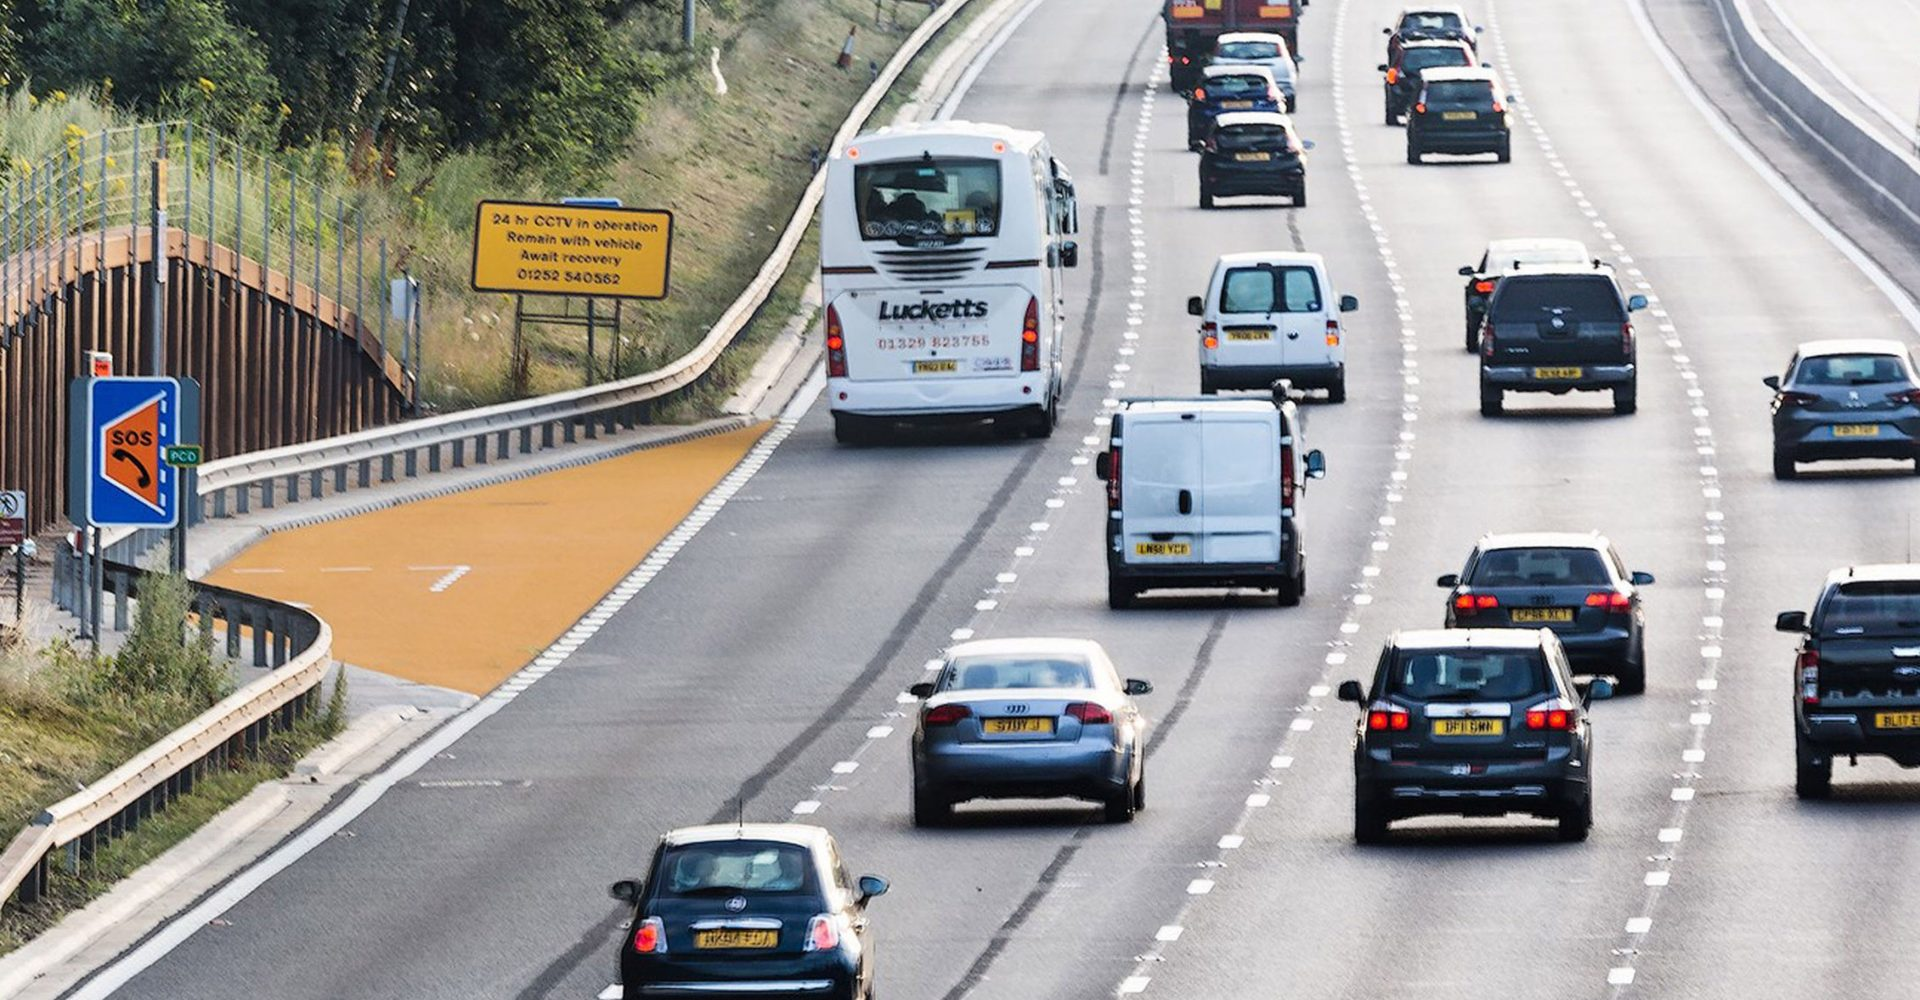 Drivers have serious concerns about smart motorway safety, RAC warns